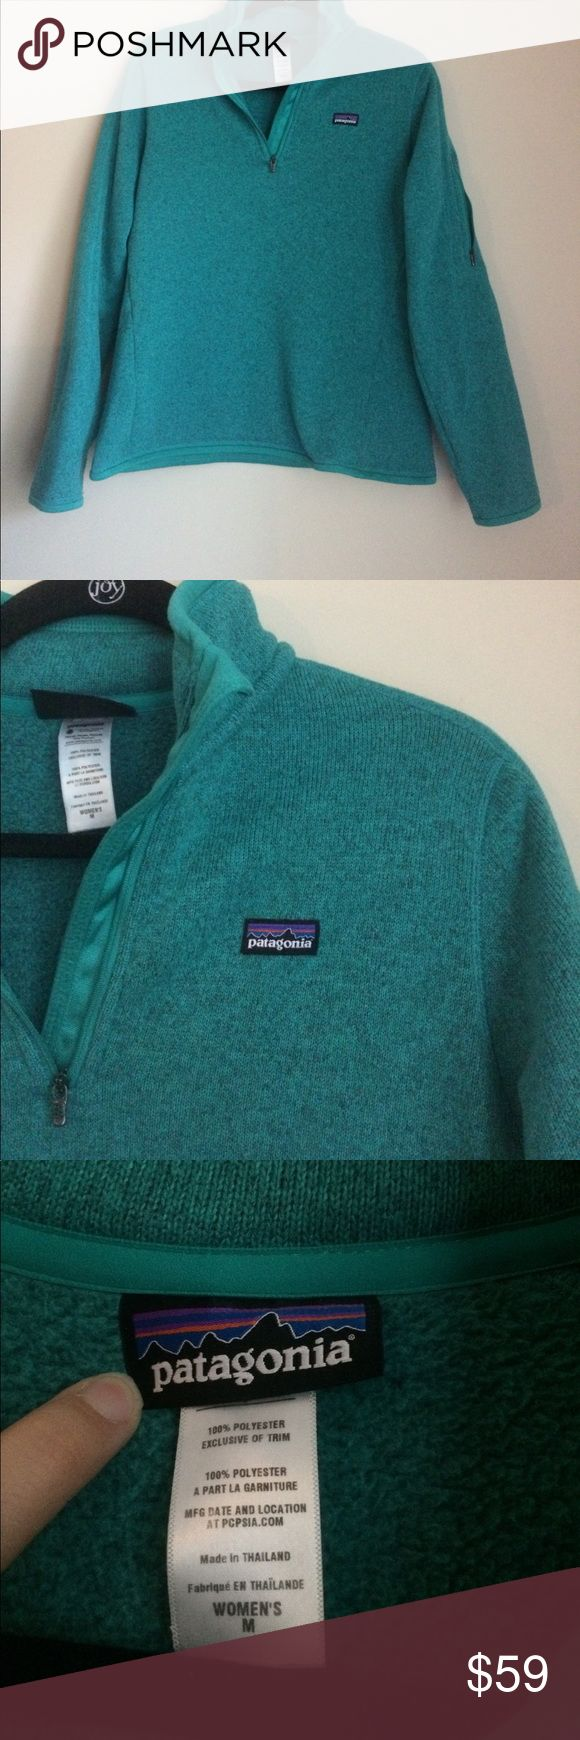 Patagonia Women's Better Sweater Green Pullover M The perfect Patagonia for cooler weather! Better sweater jacket perfect with jeans, or for a workout! Quarter Zip Sweatshirt. does have some light piling, no rips or stains. Patagonia Tops Sweatshirts & Hoodies